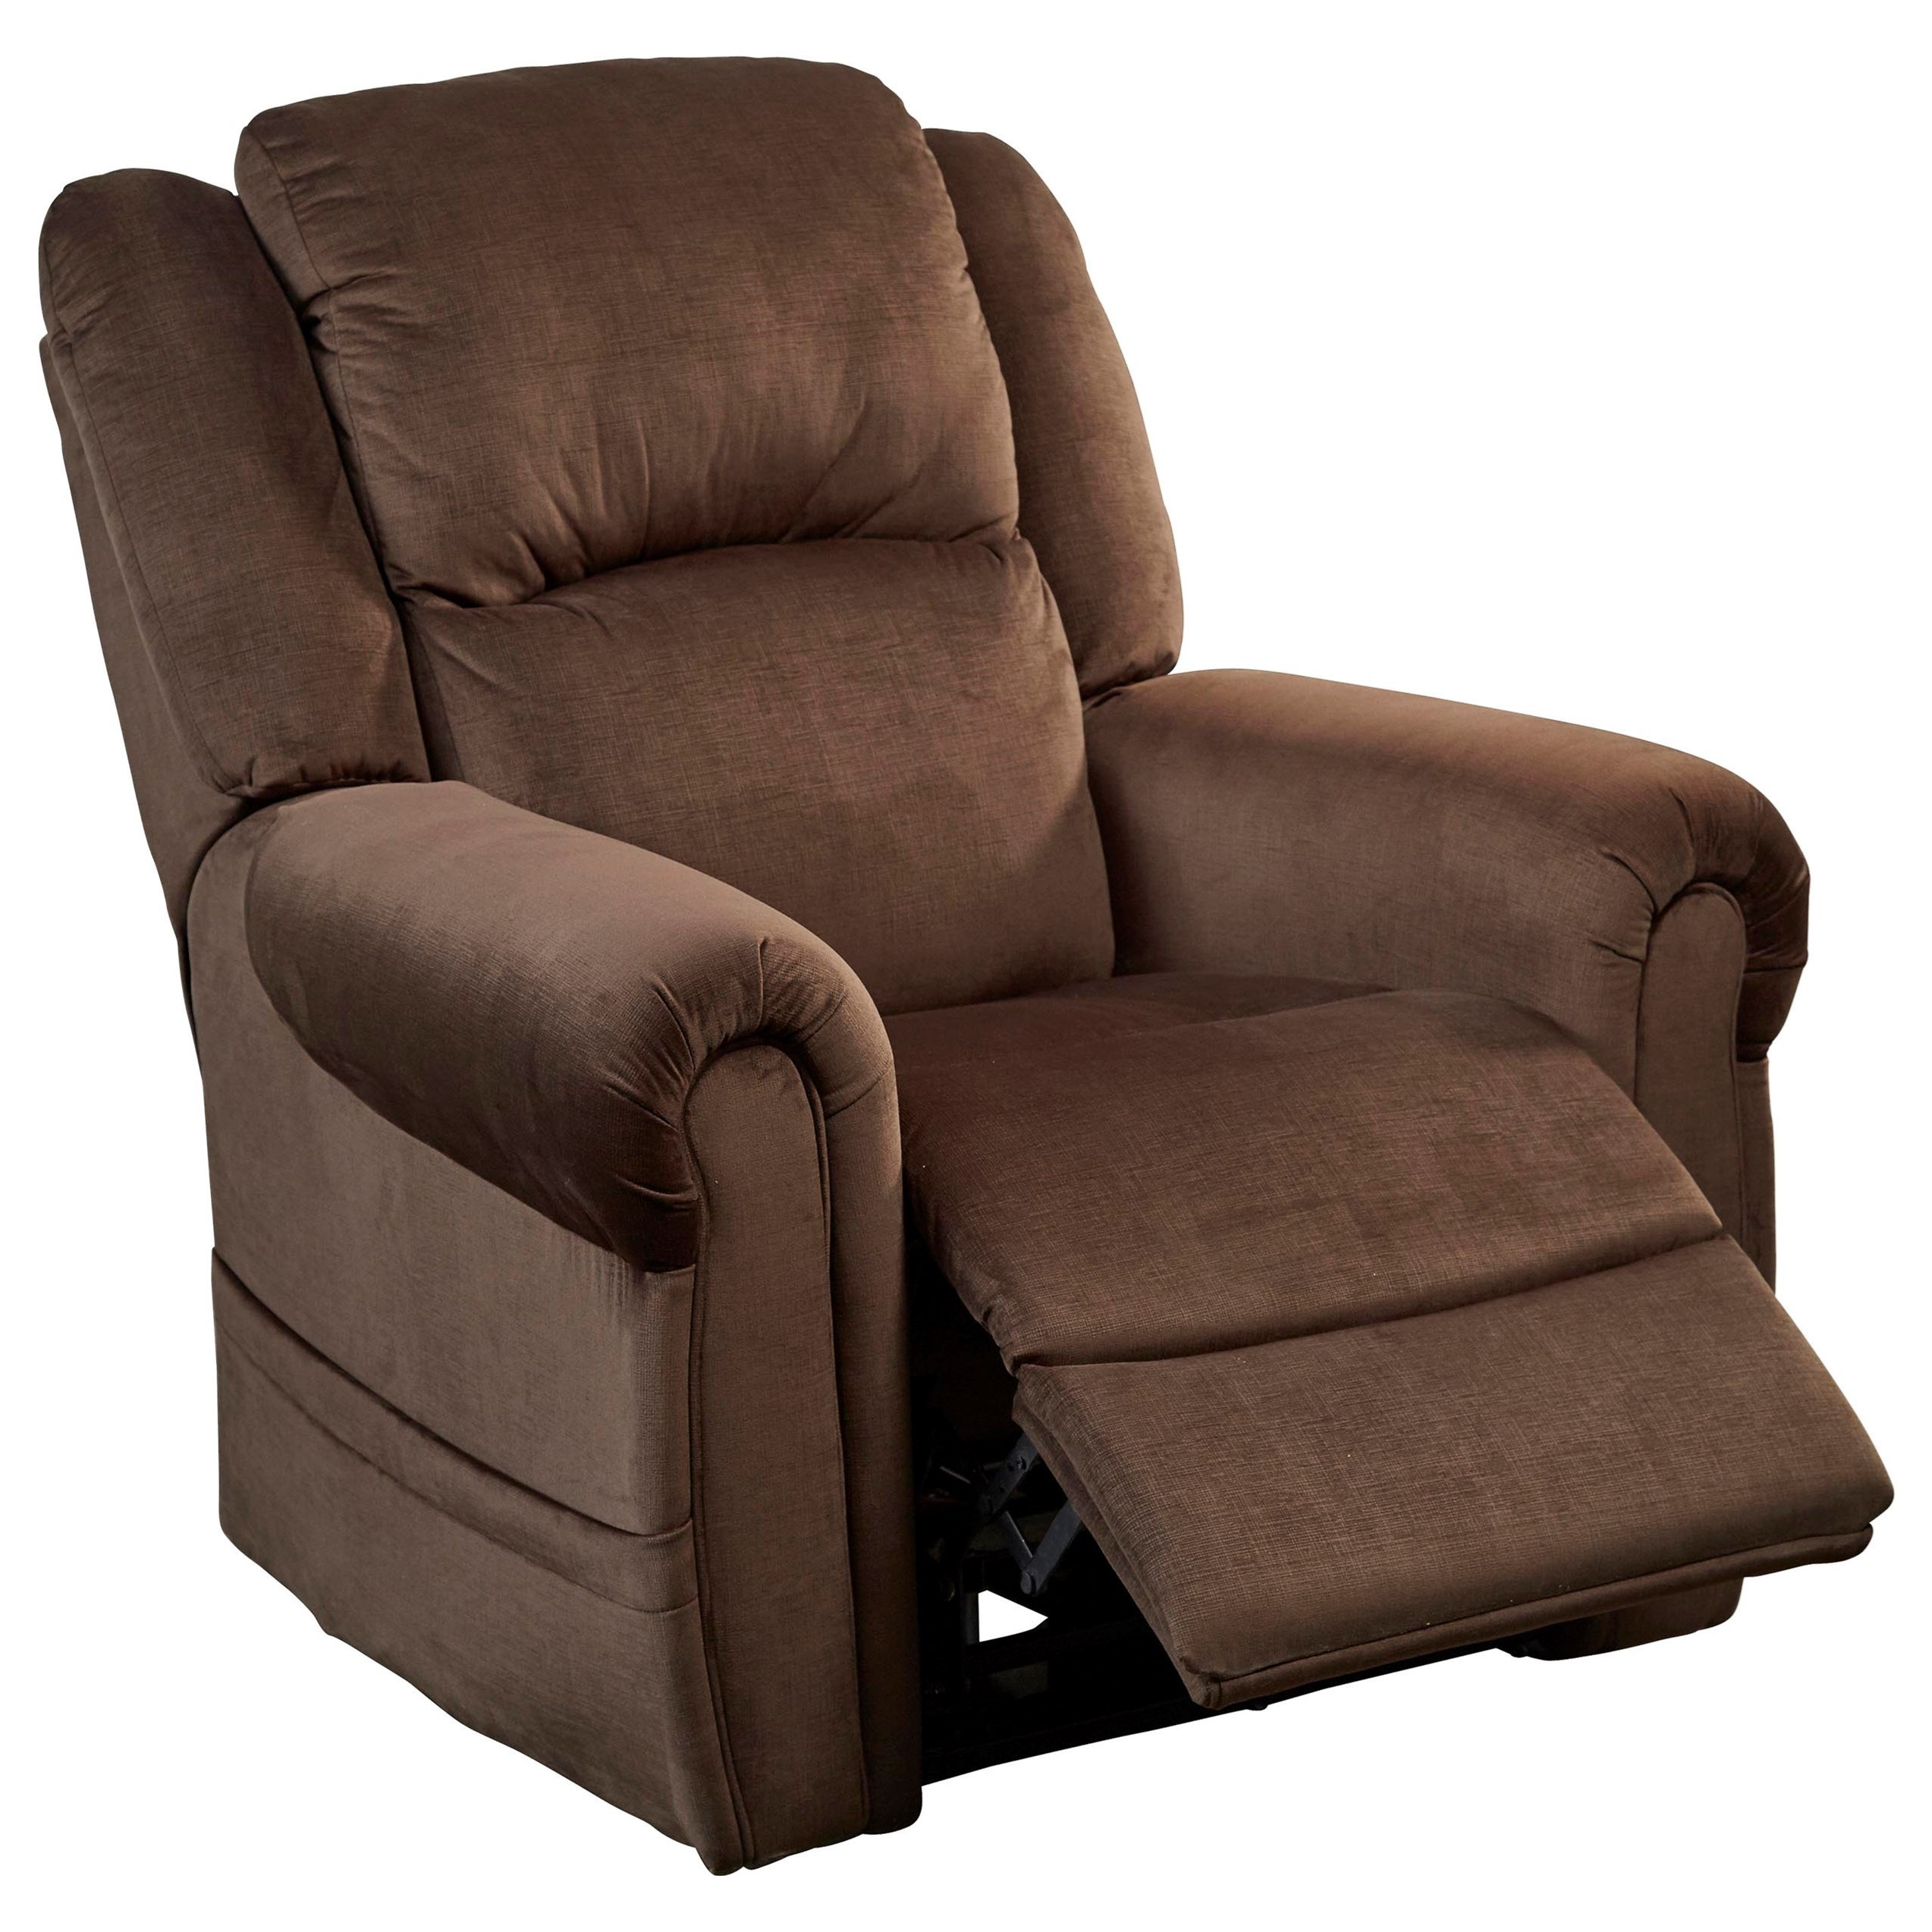 Catnapper motion chairs and recliners spencer power lift recliner with power headrest zak 39 s - Catnapper lift chairs recliners ...